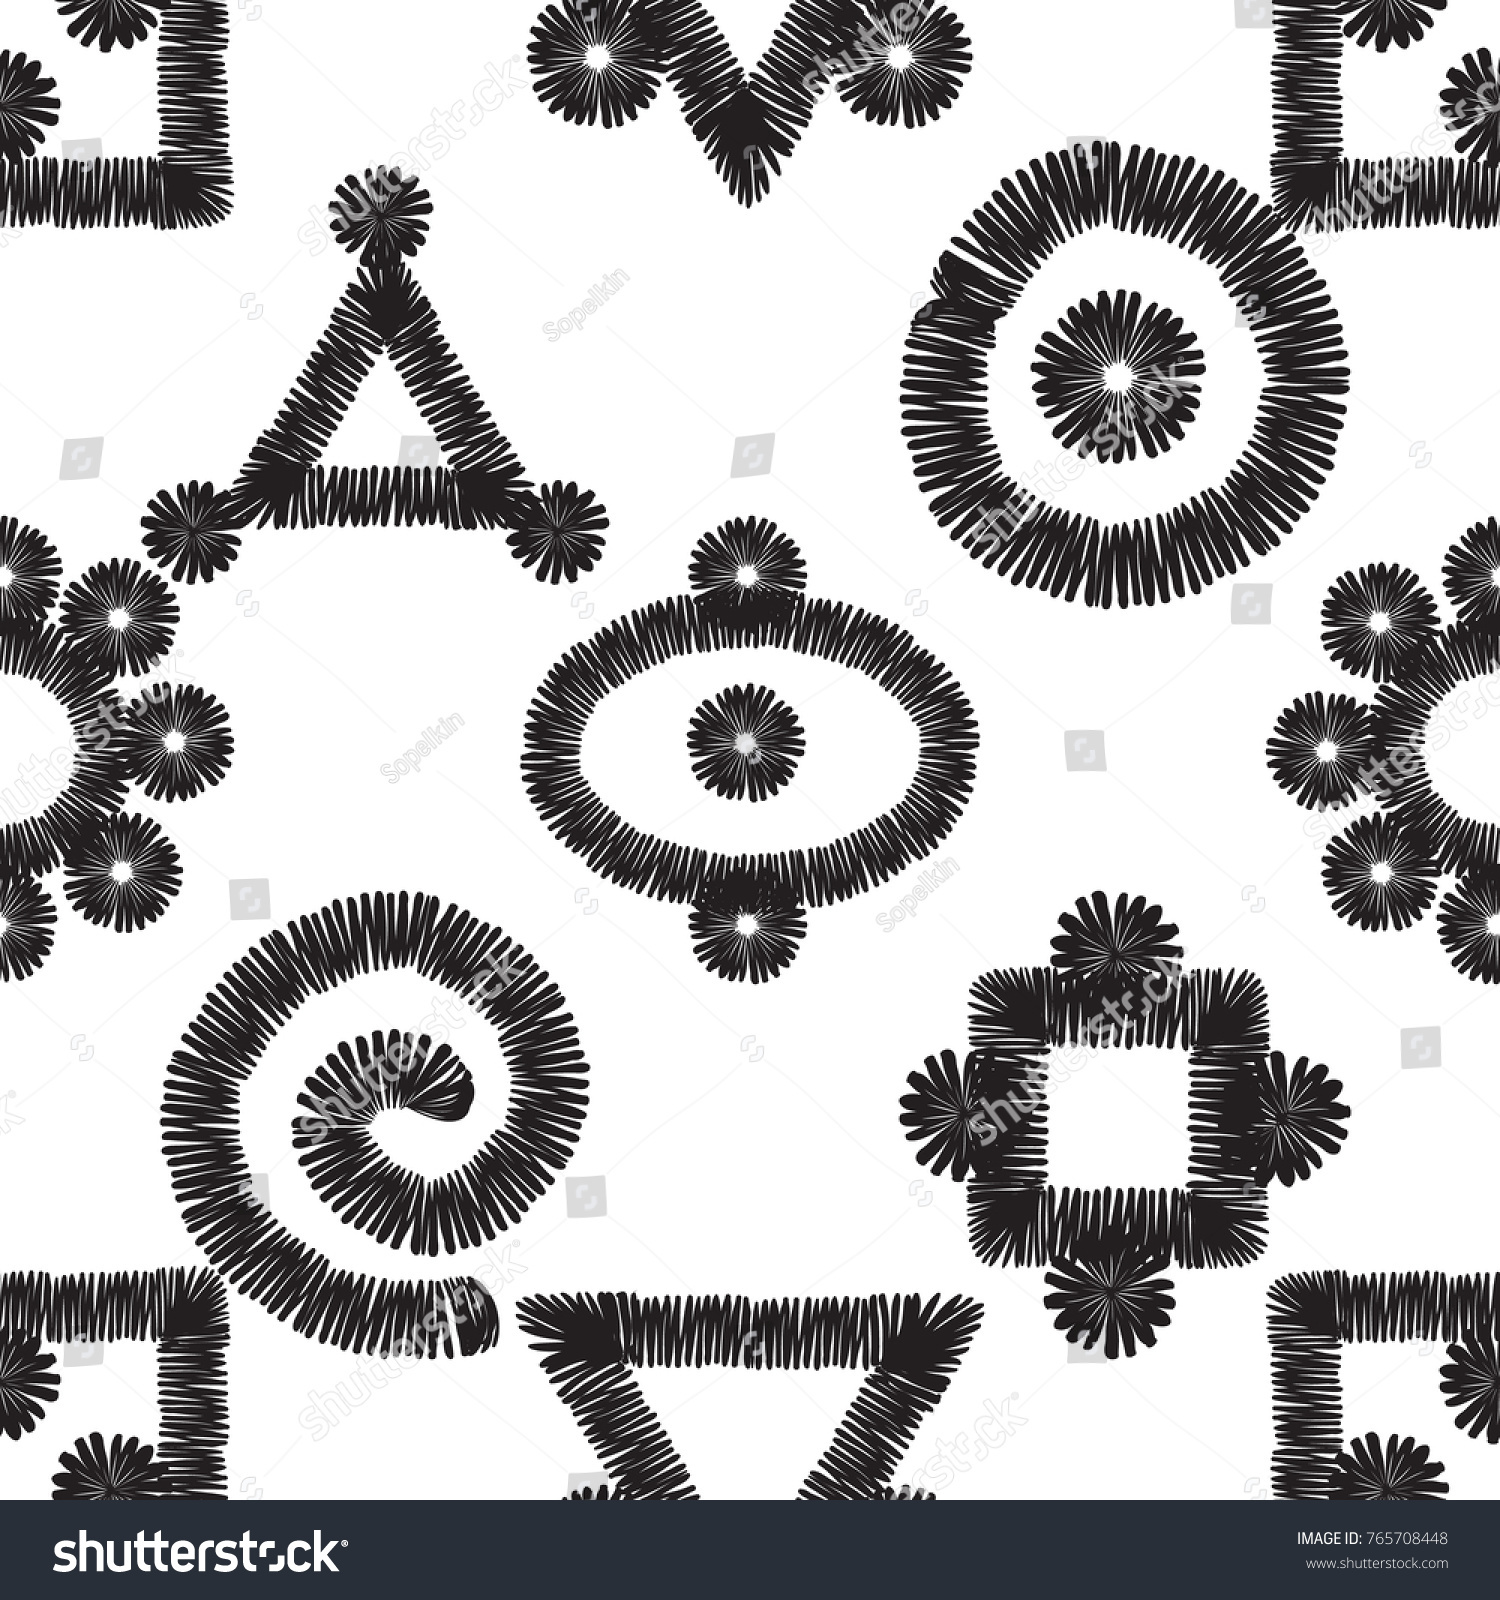 Tribal embroidery primitive aztec symbols vector stock vector tribal embroidery primitive aztec symbols vector abstract seamless pattern black graphic on white background biocorpaavc Gallery